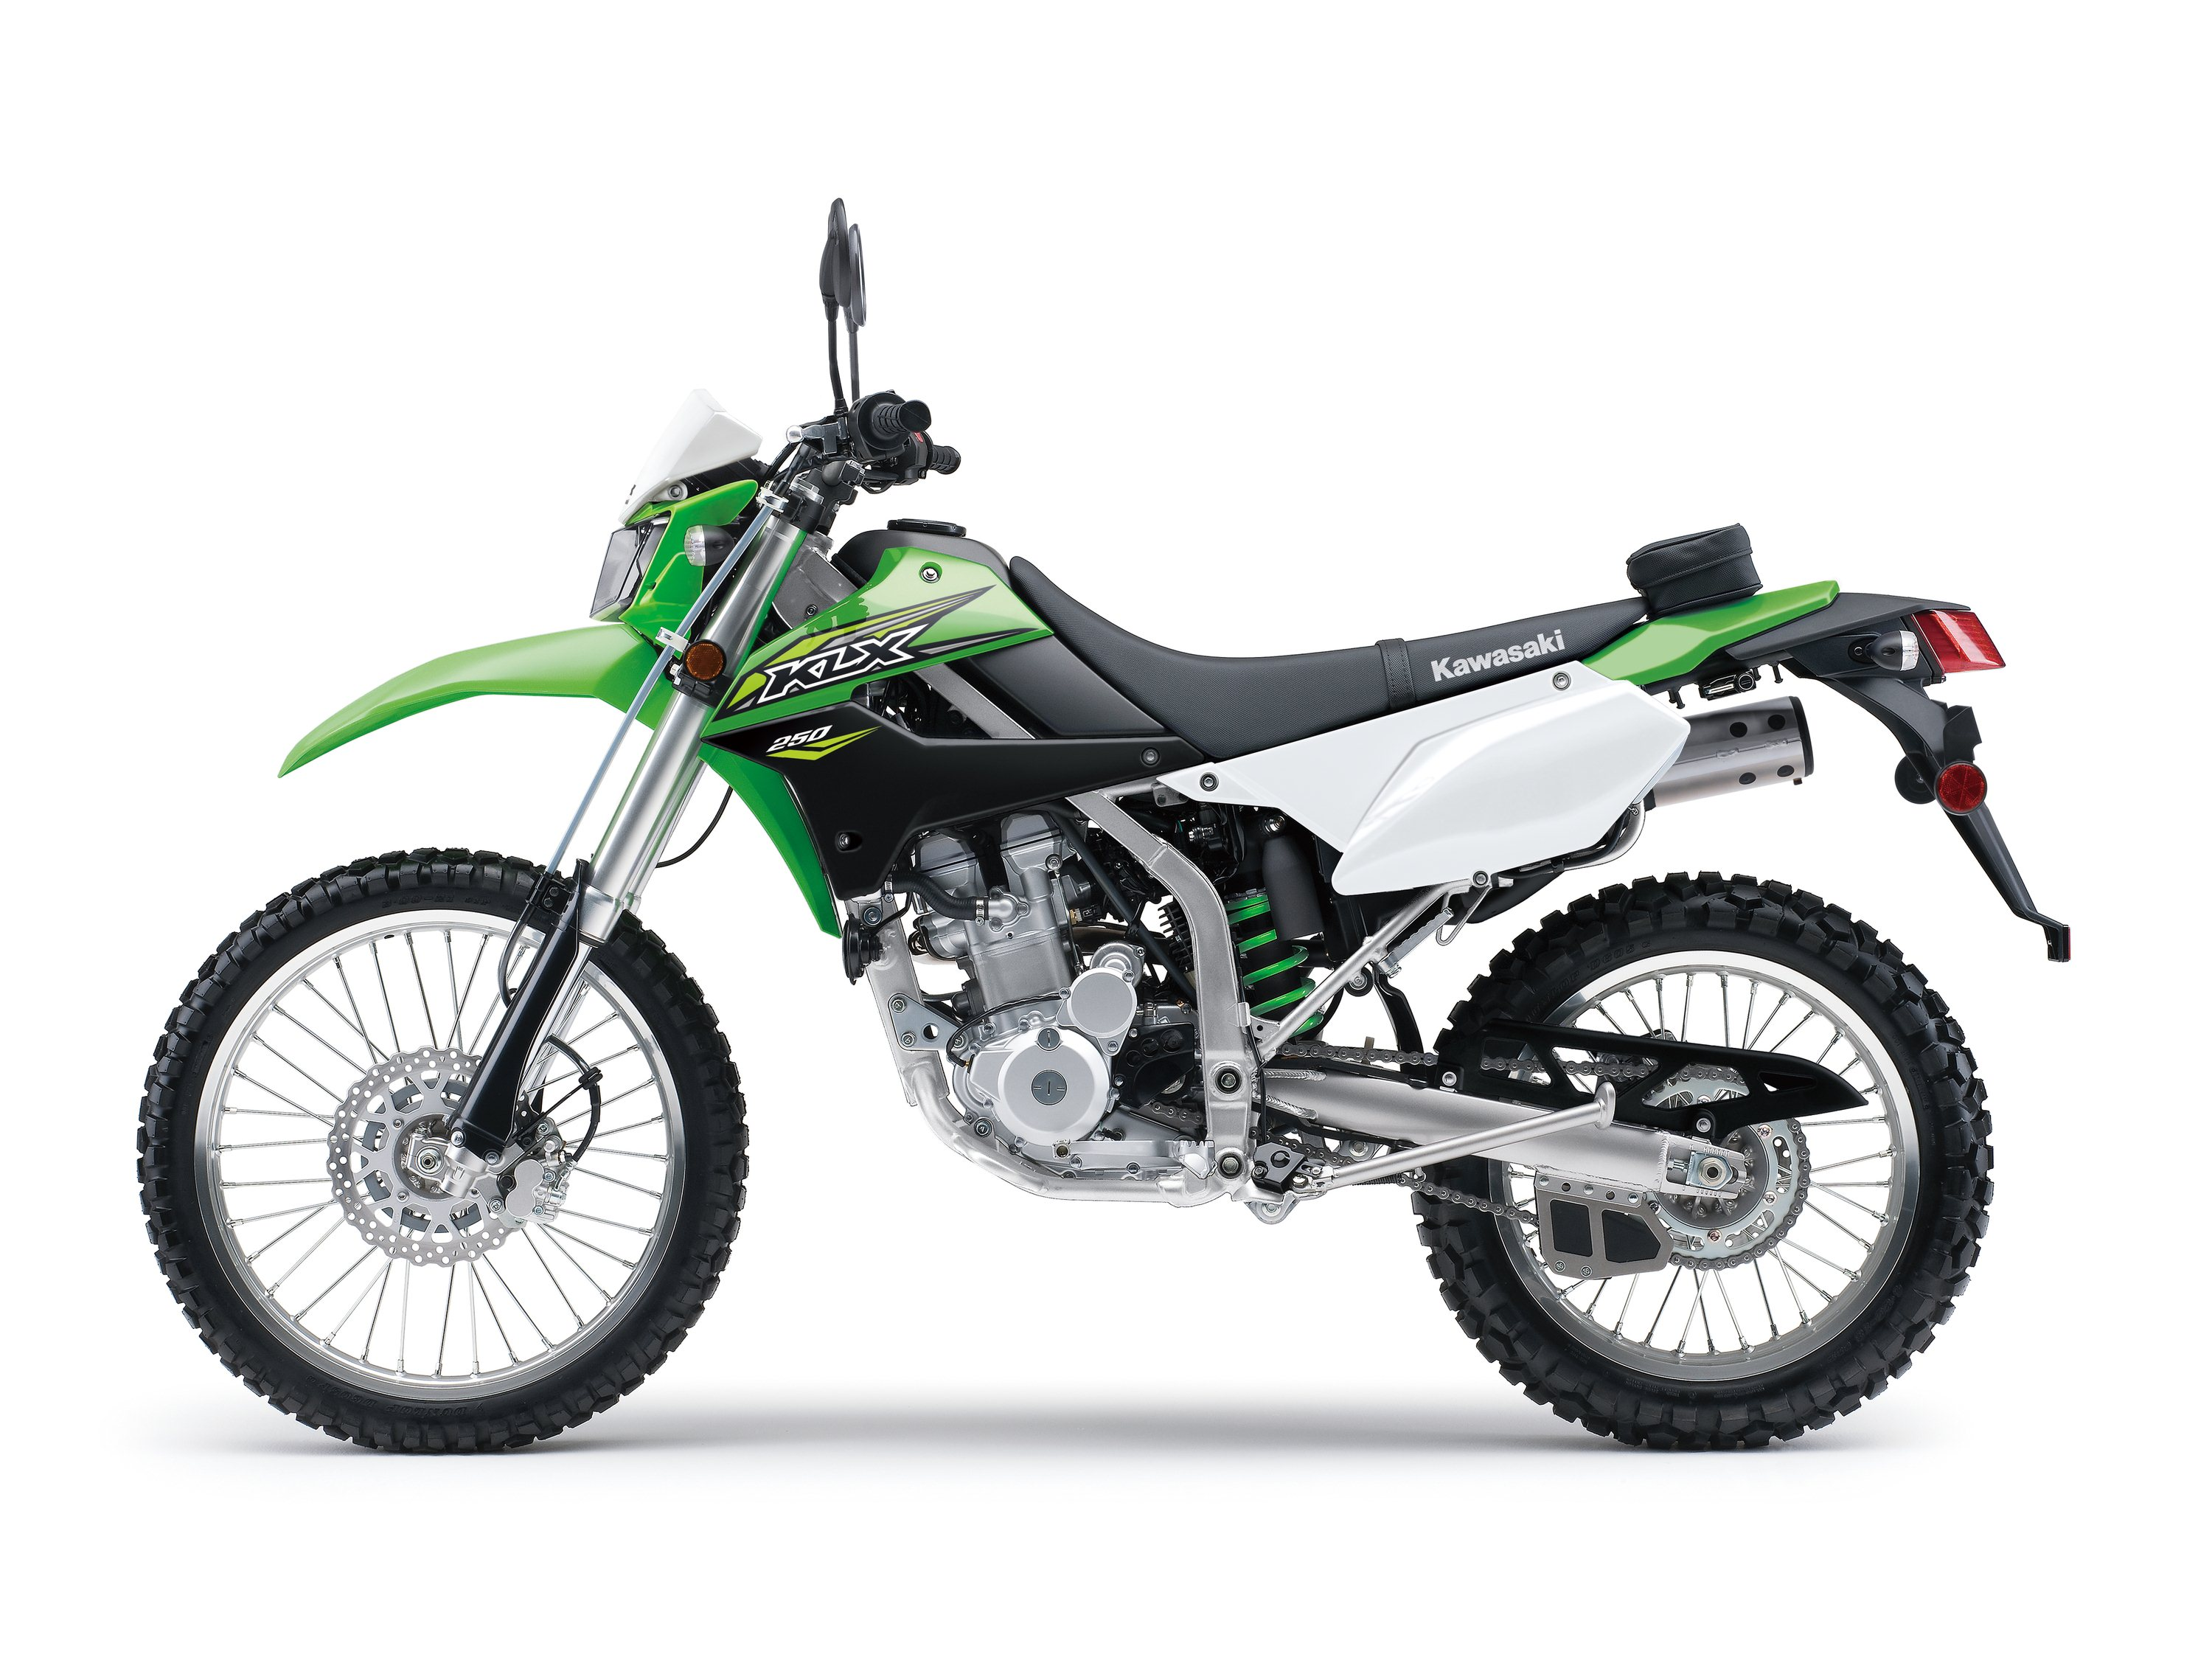 2018 Kawasaki KLX250 Announced + Video